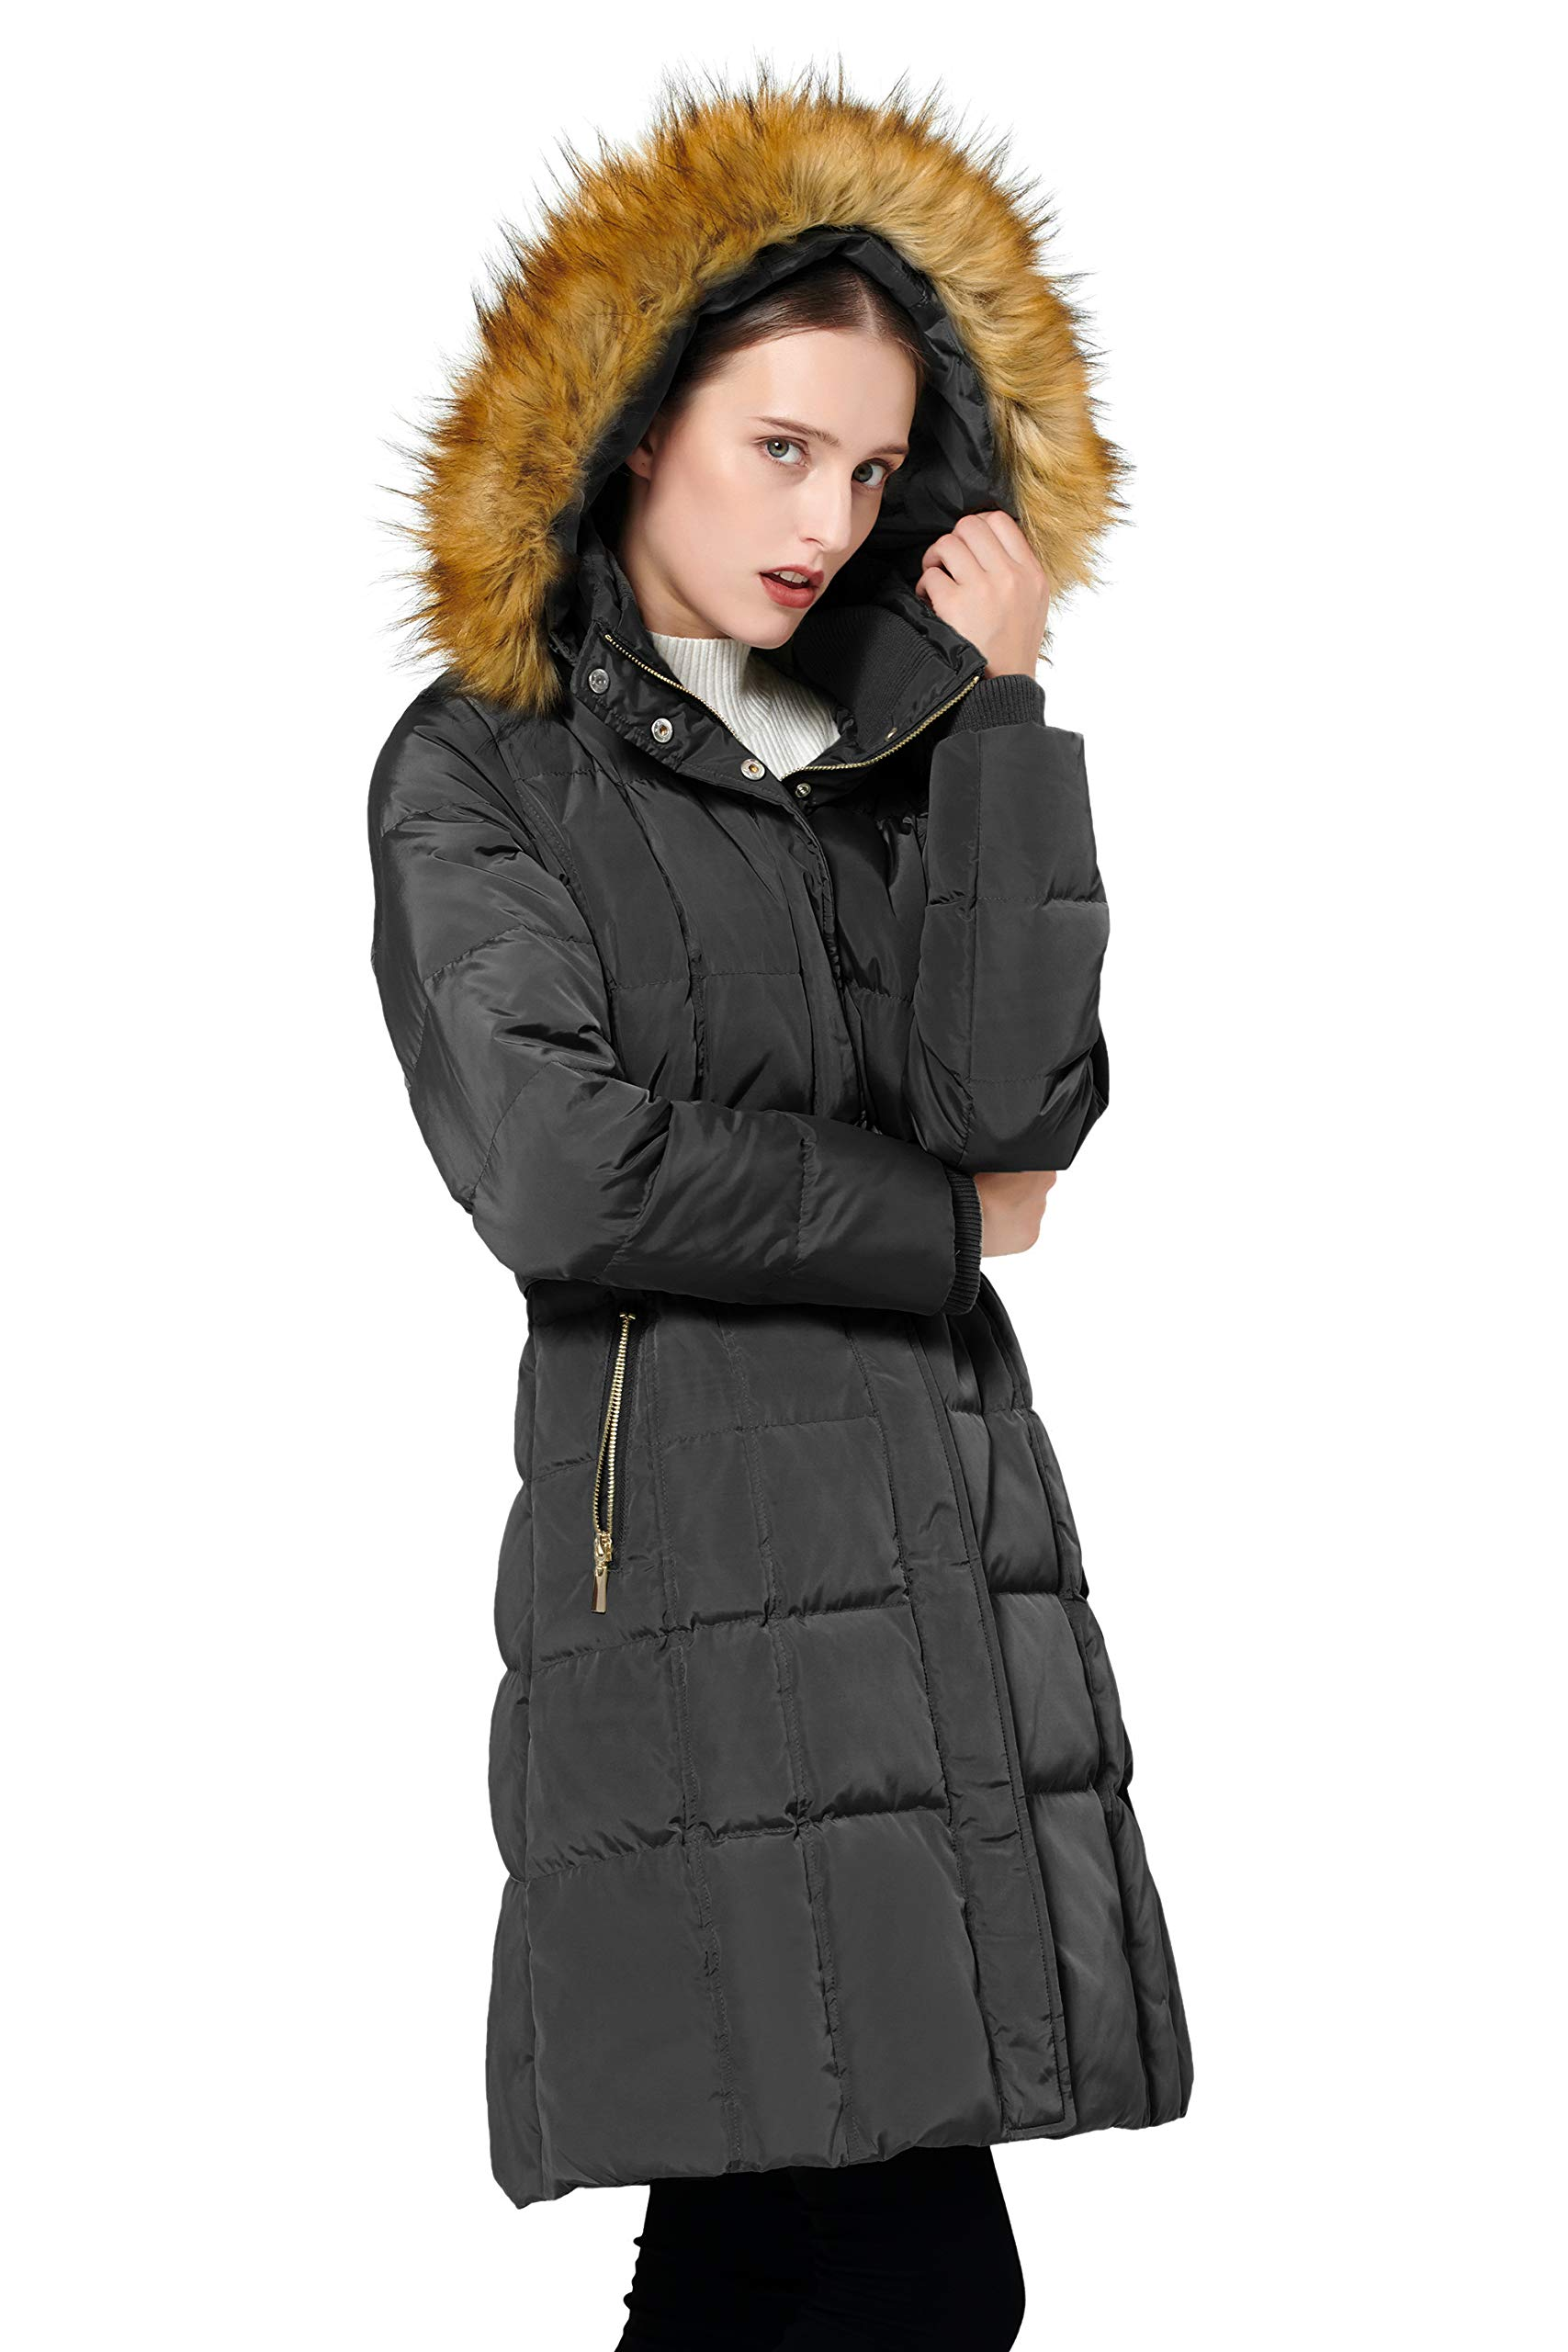 Buy Orolay Puffer Jacket Now!